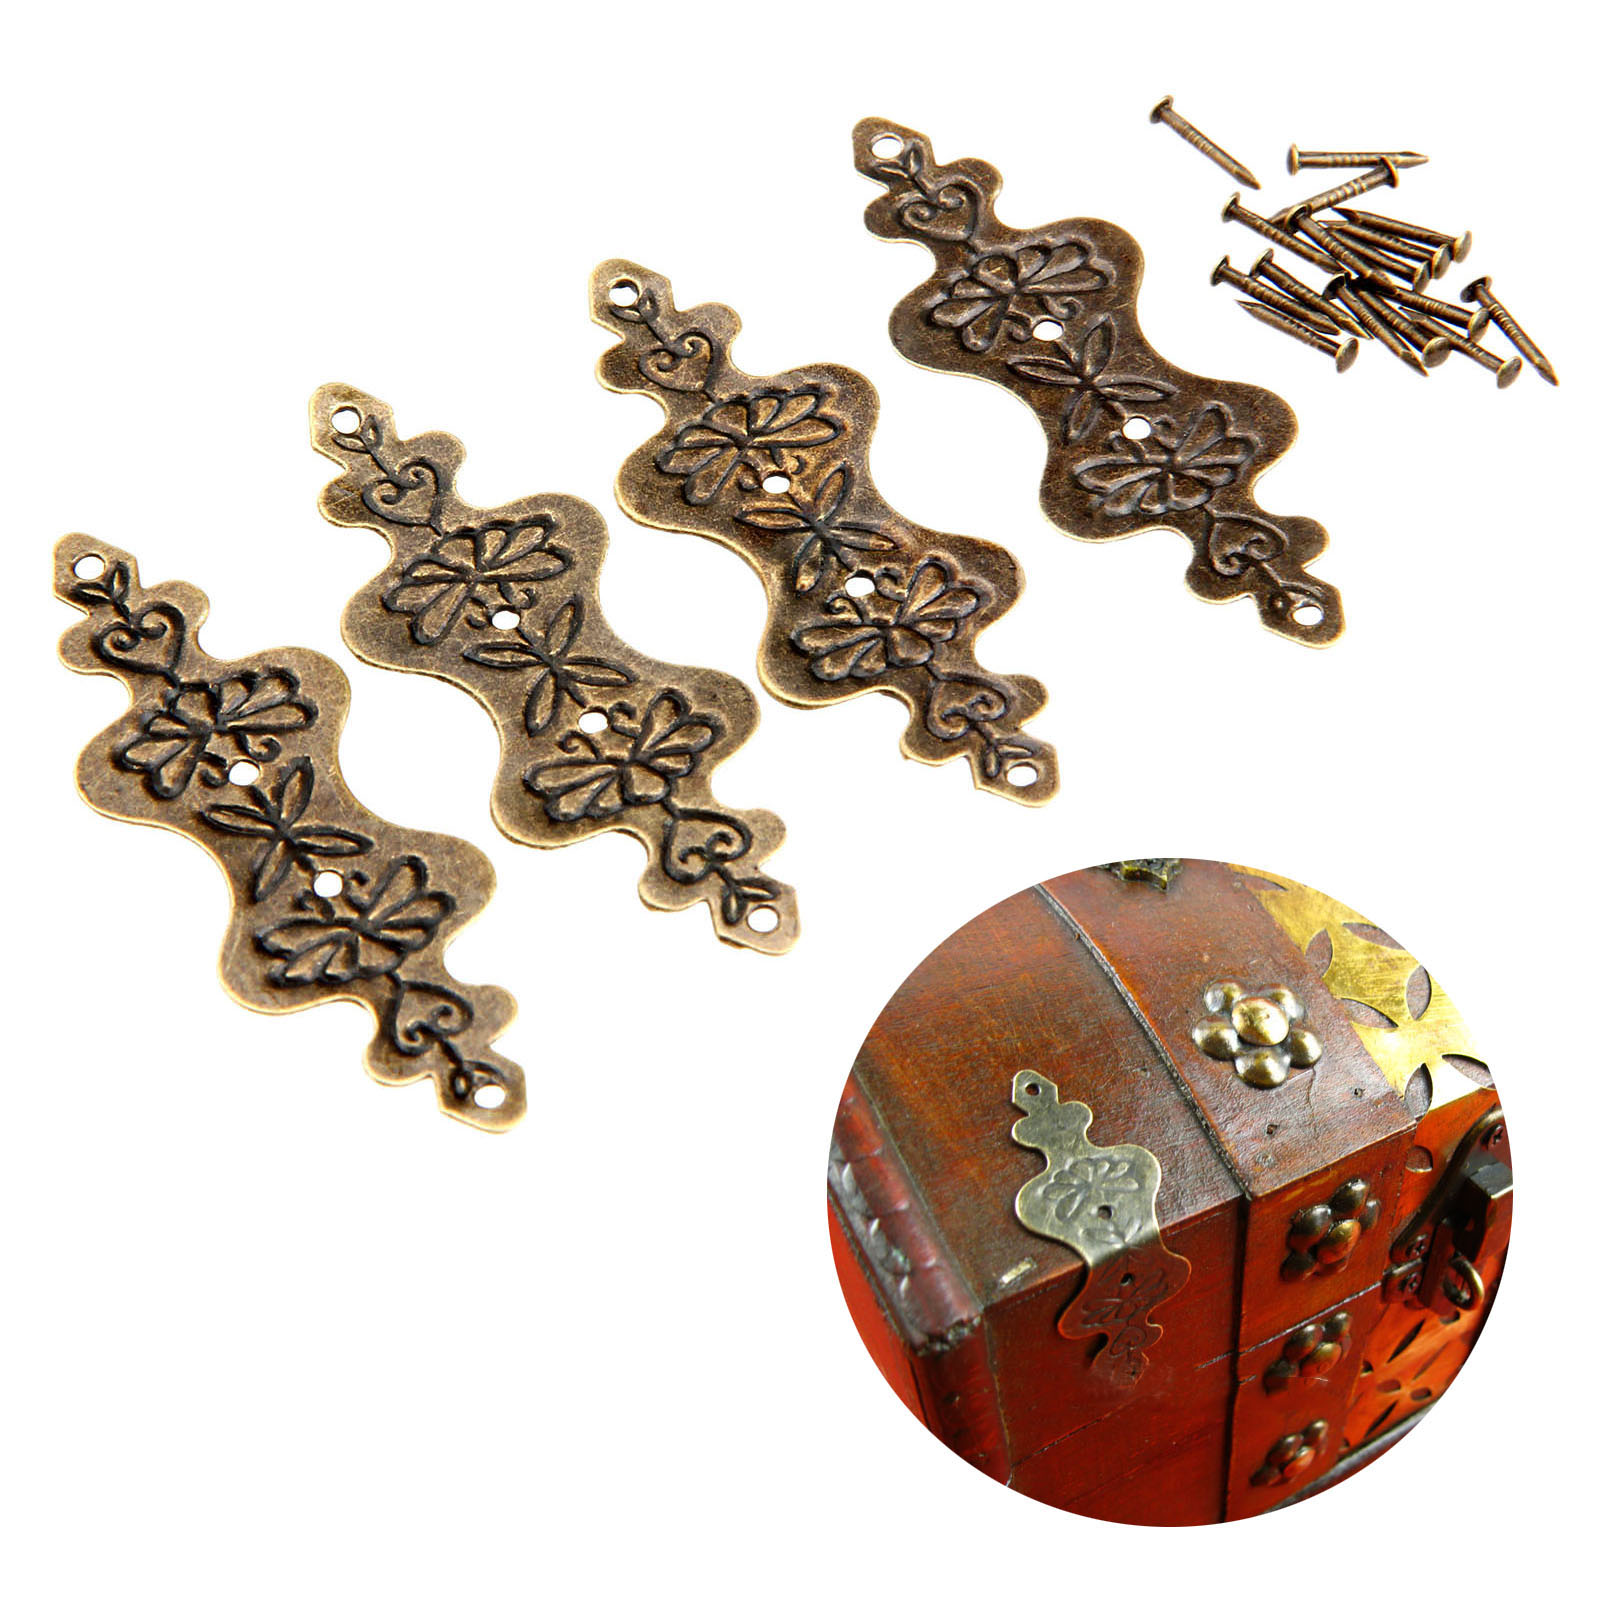 4Pcs Antique Bronze Corner Bracket Jewelry Box Wood Case Decorative Feet Leg Corner Protector Furniture Fittings W/Nails 56*20mm